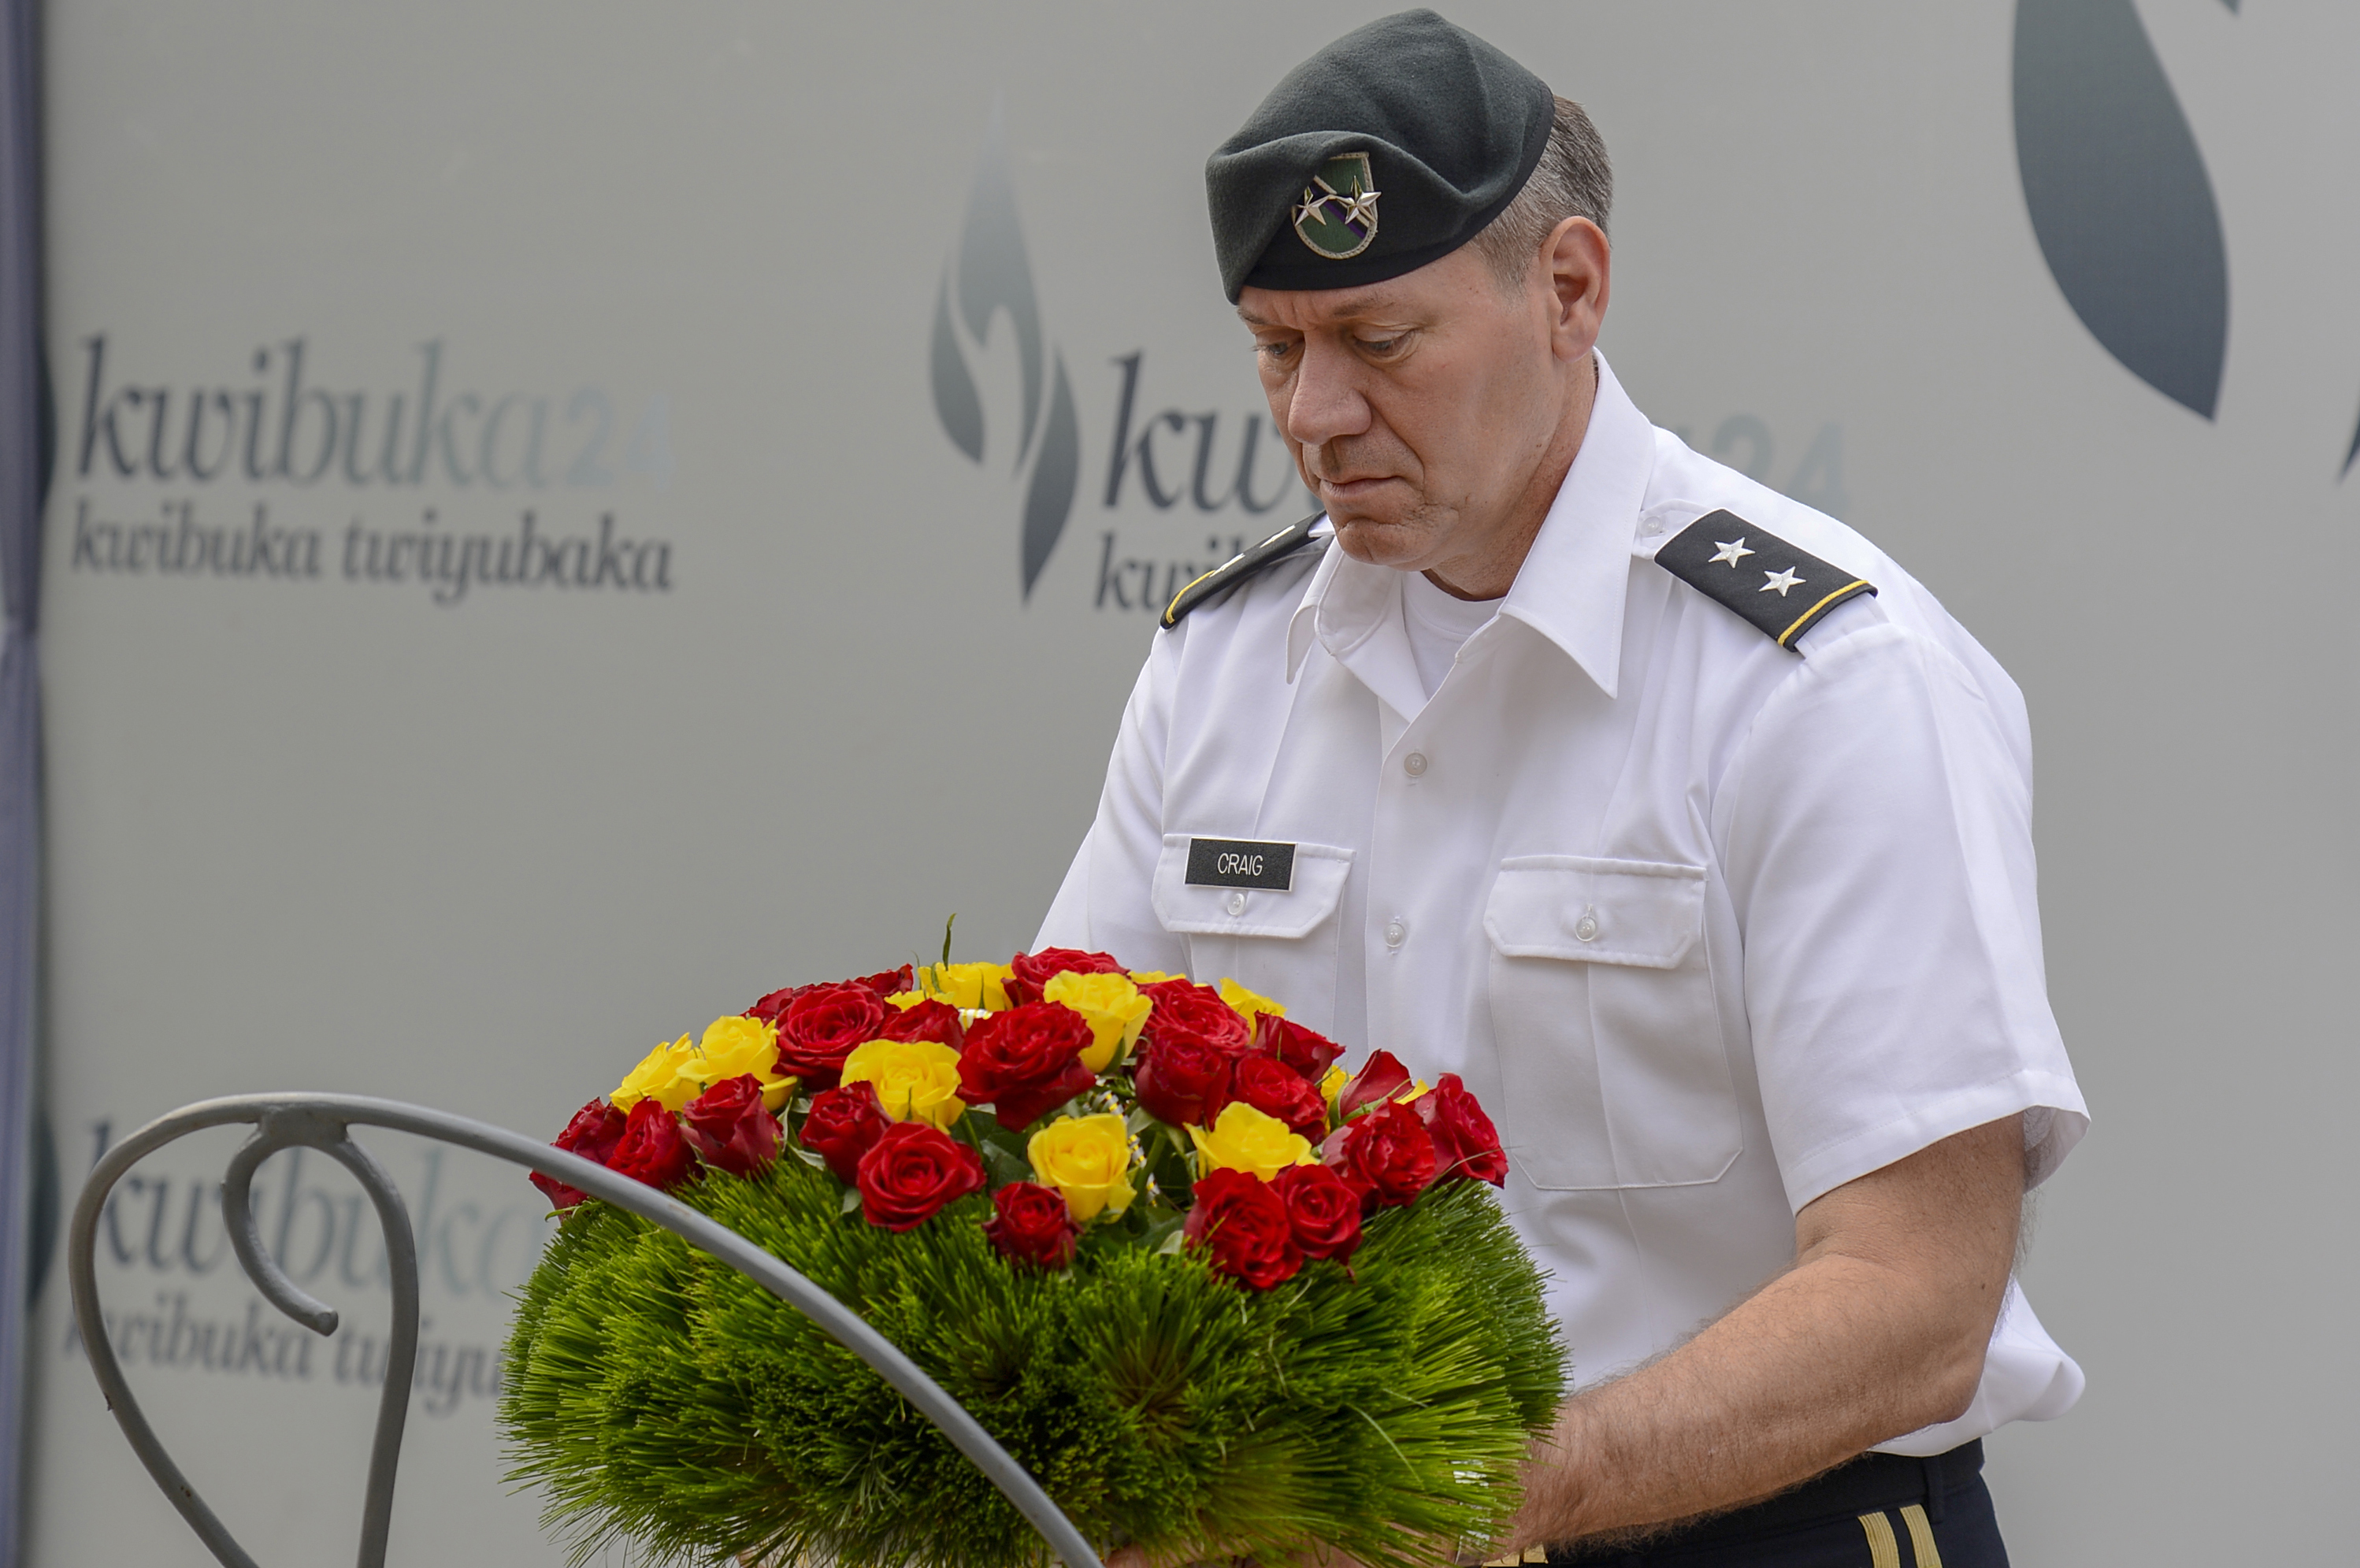 U.S. Army Maj. Gen. James Craig, commanding general of Combined Joint Task Force- Horn of Africa, places a wreath at a tomb of 250,000 Rwandans at the Kigali Genocide Memorial in Kigali, Rwanda, Aug. 29, 2018. Craig visited Rwanda to conduct key leader engagements, meeting with both U.S. and Rwandan top leaders. (U.S. Navy Photo by Mass Communication Specialist 2nd Class Timothy M. Ahearn)